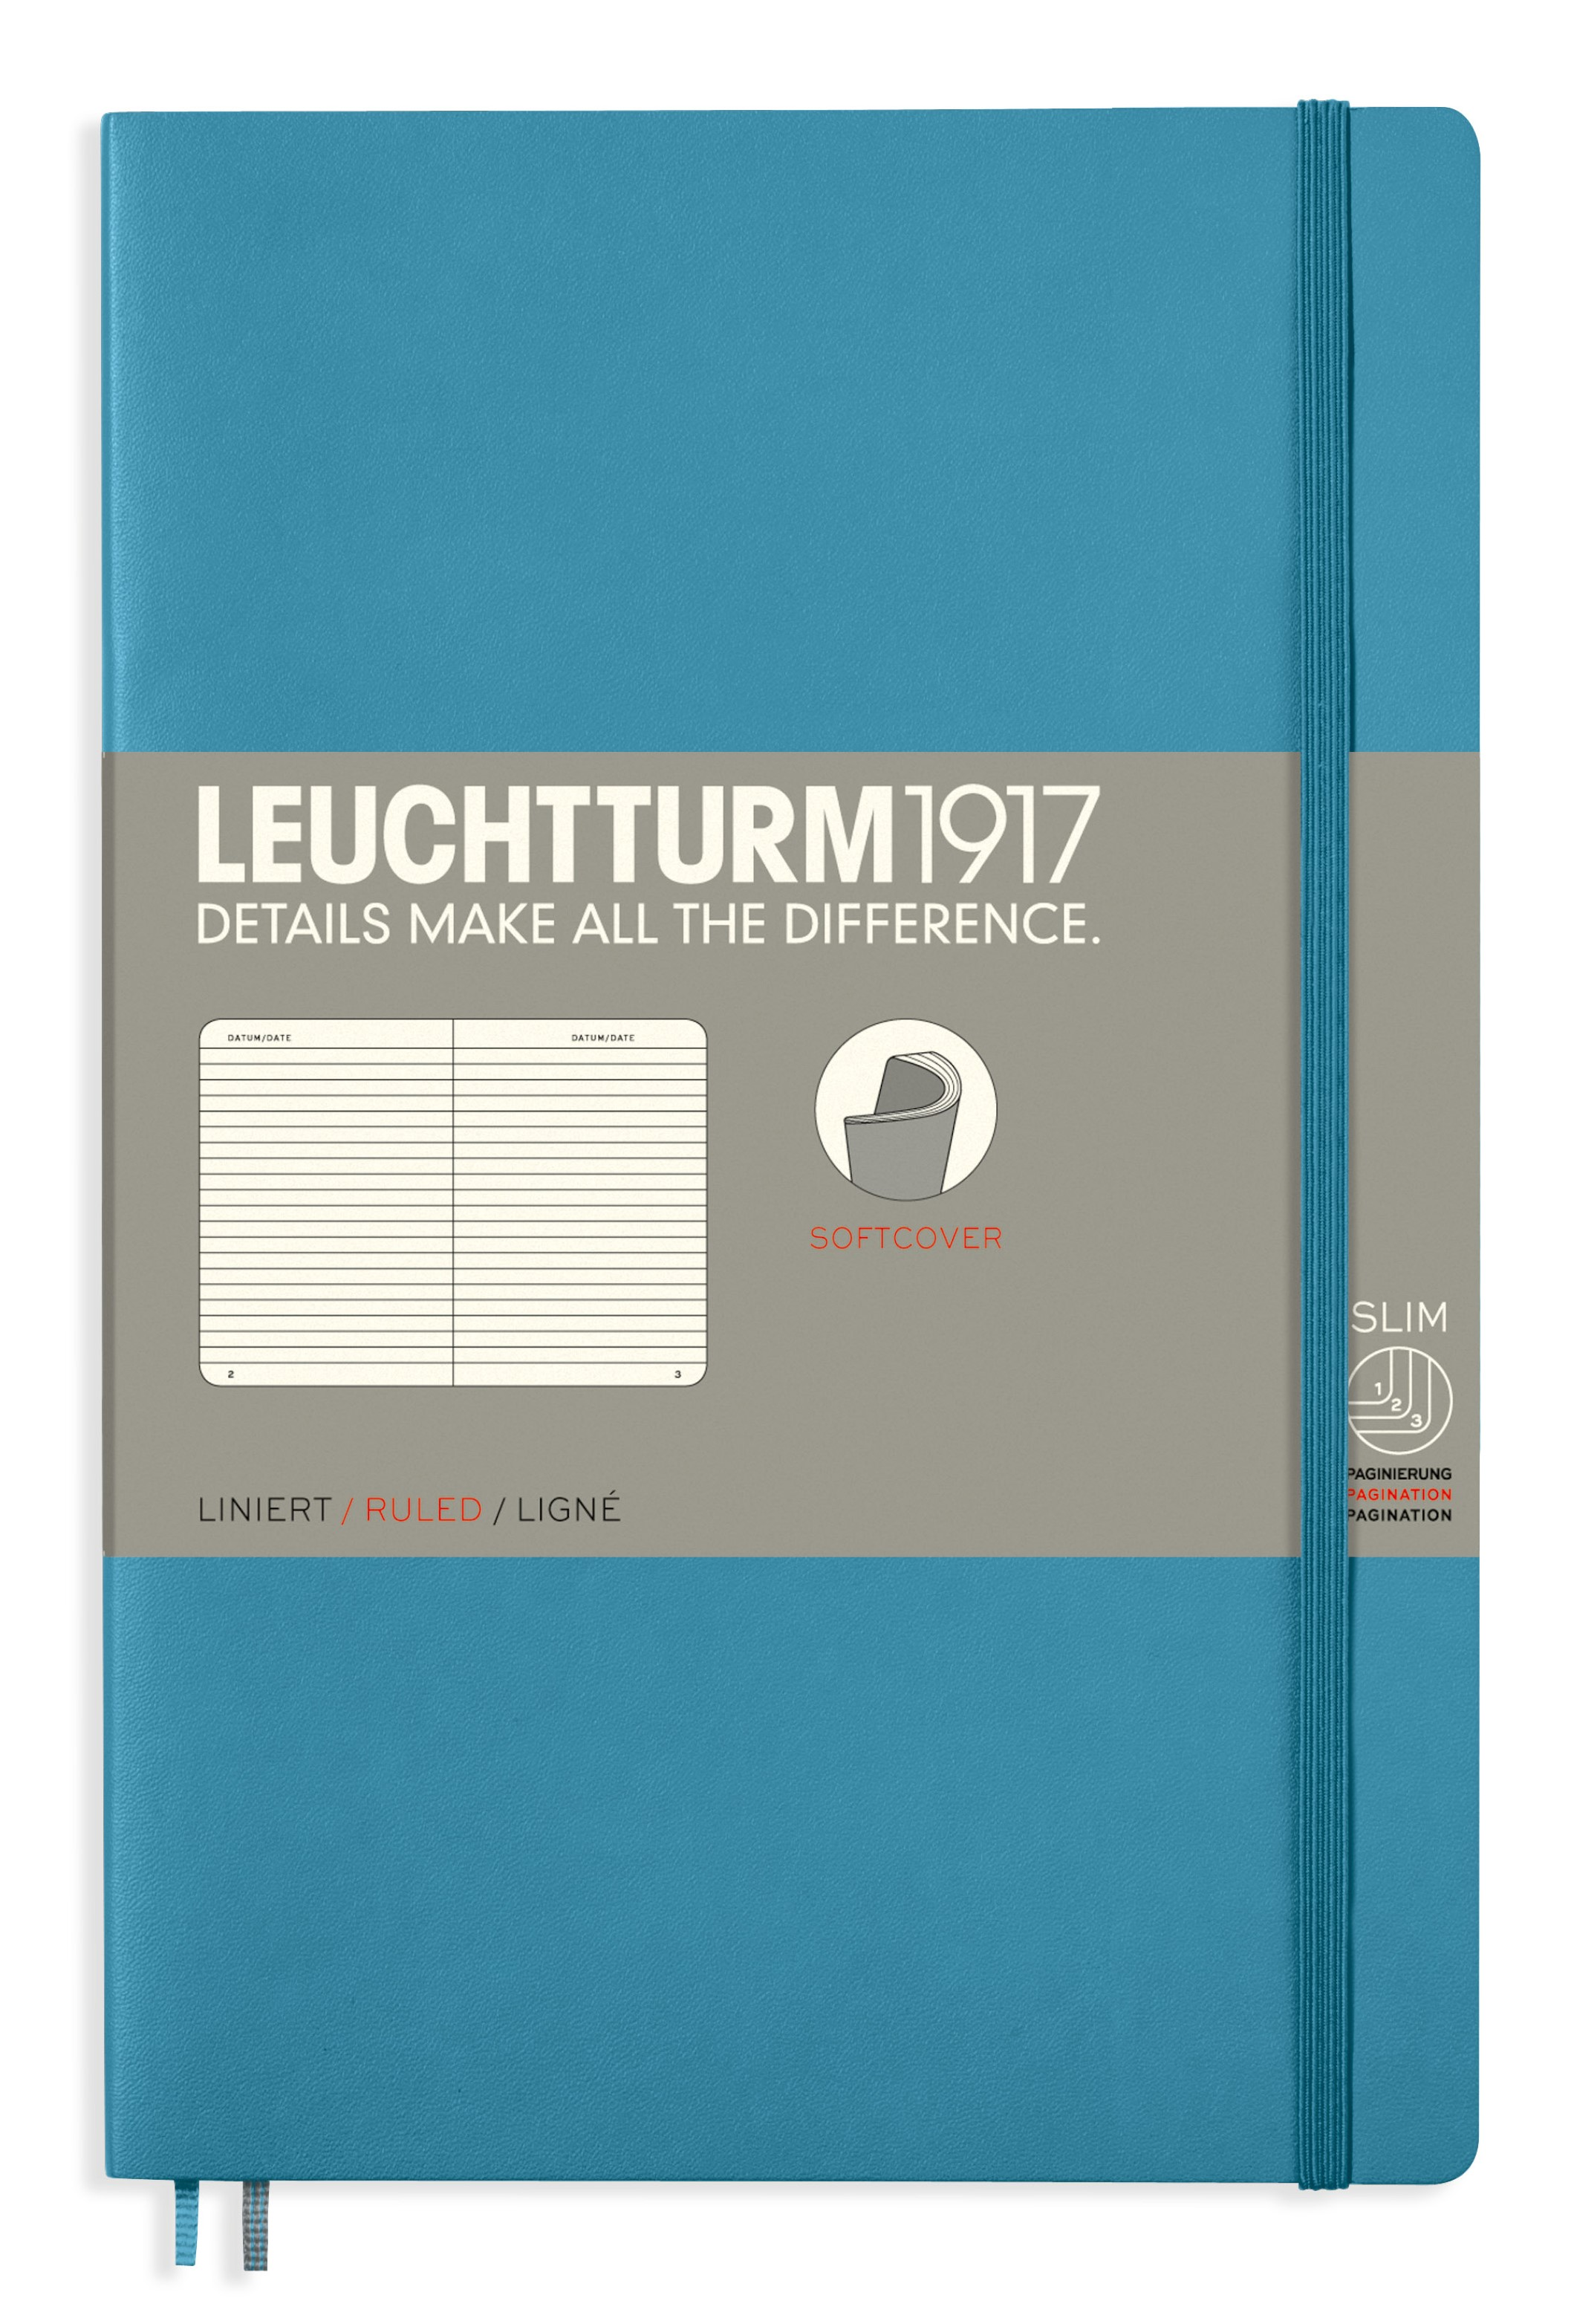 Nordic Blue B6+ Ruled Softcover Notebook